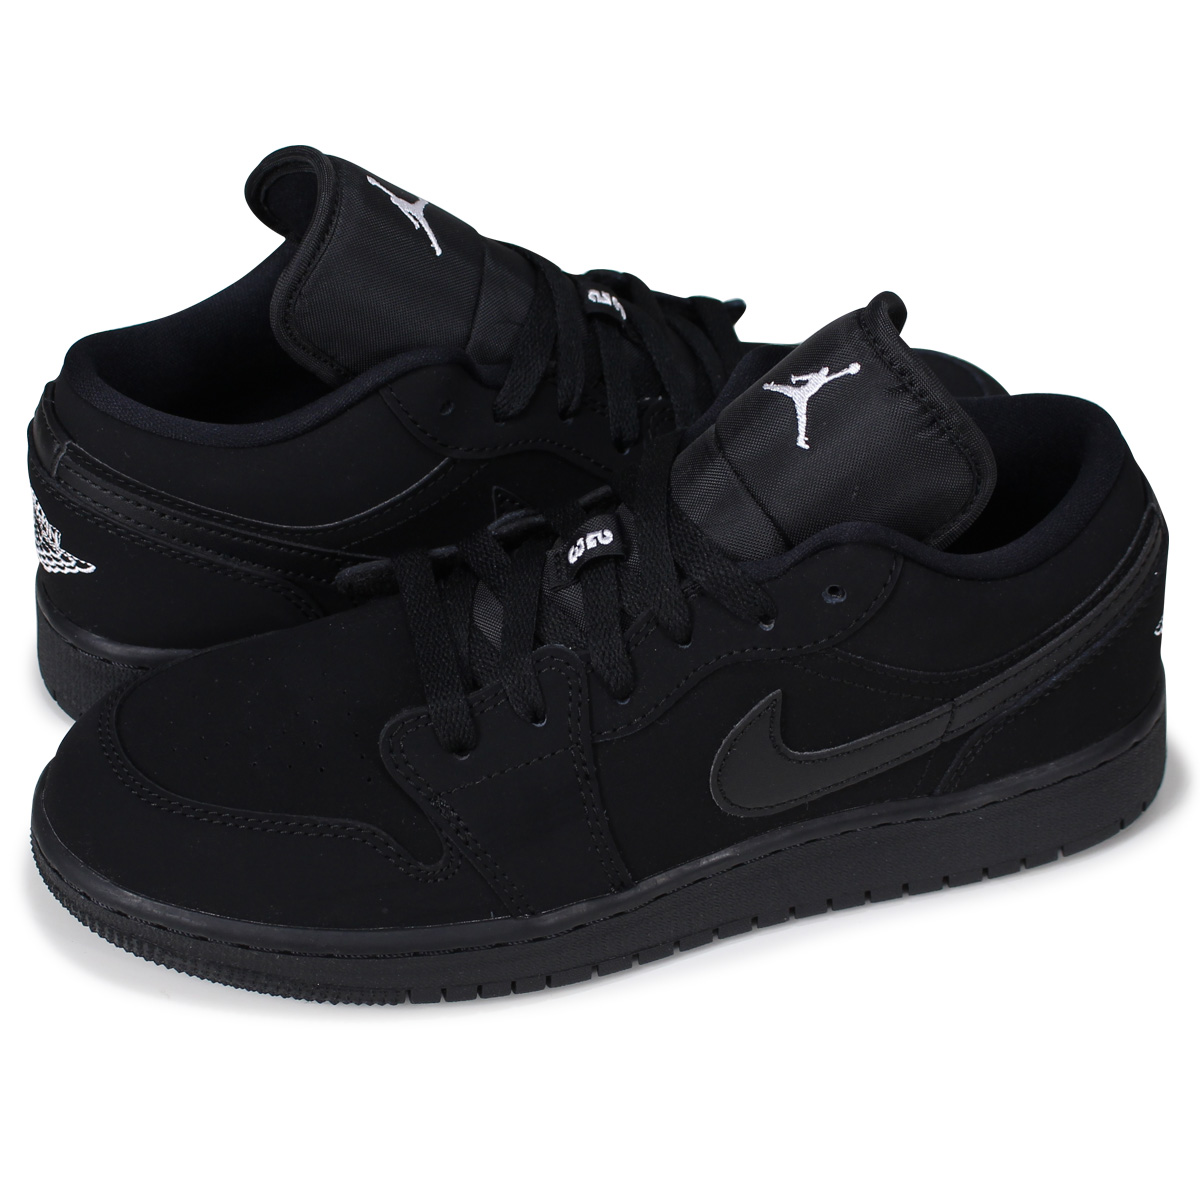 separation shoes dfa59 67202 NIKE AIR JORDAN 1 LOW GS Nike Air Jordan 1 Lady's sneakers 553,560-019  black [7/13 Shinnyu load]